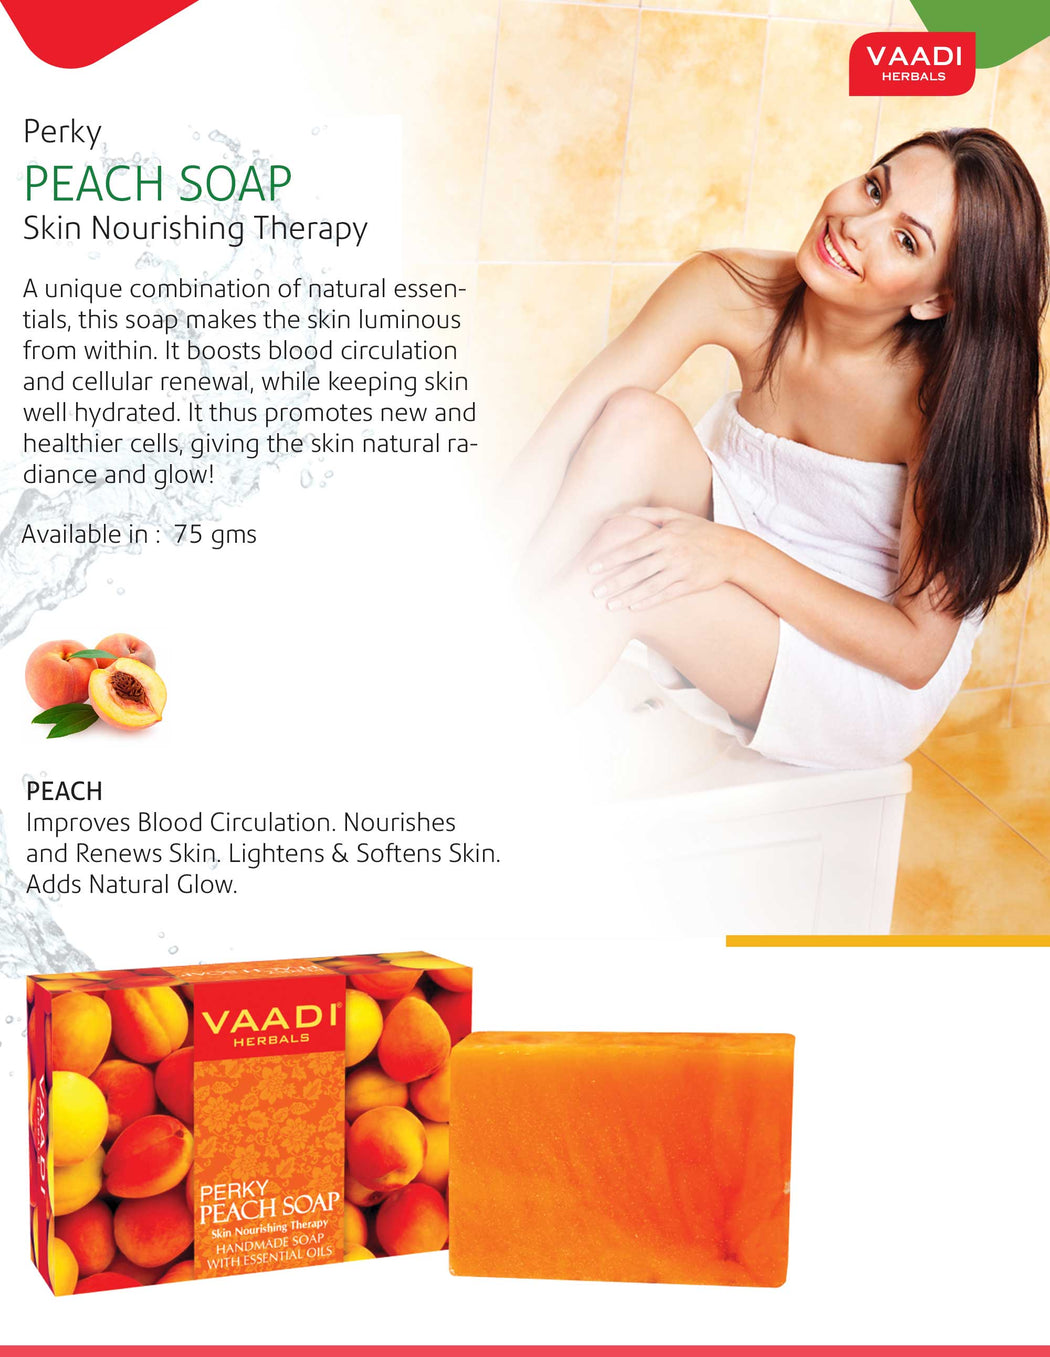 Organic Perky Peach Soap with Almond Oil - Skin Nourishing - Rehydrates (3 x 75 gms / 2.7 oz)